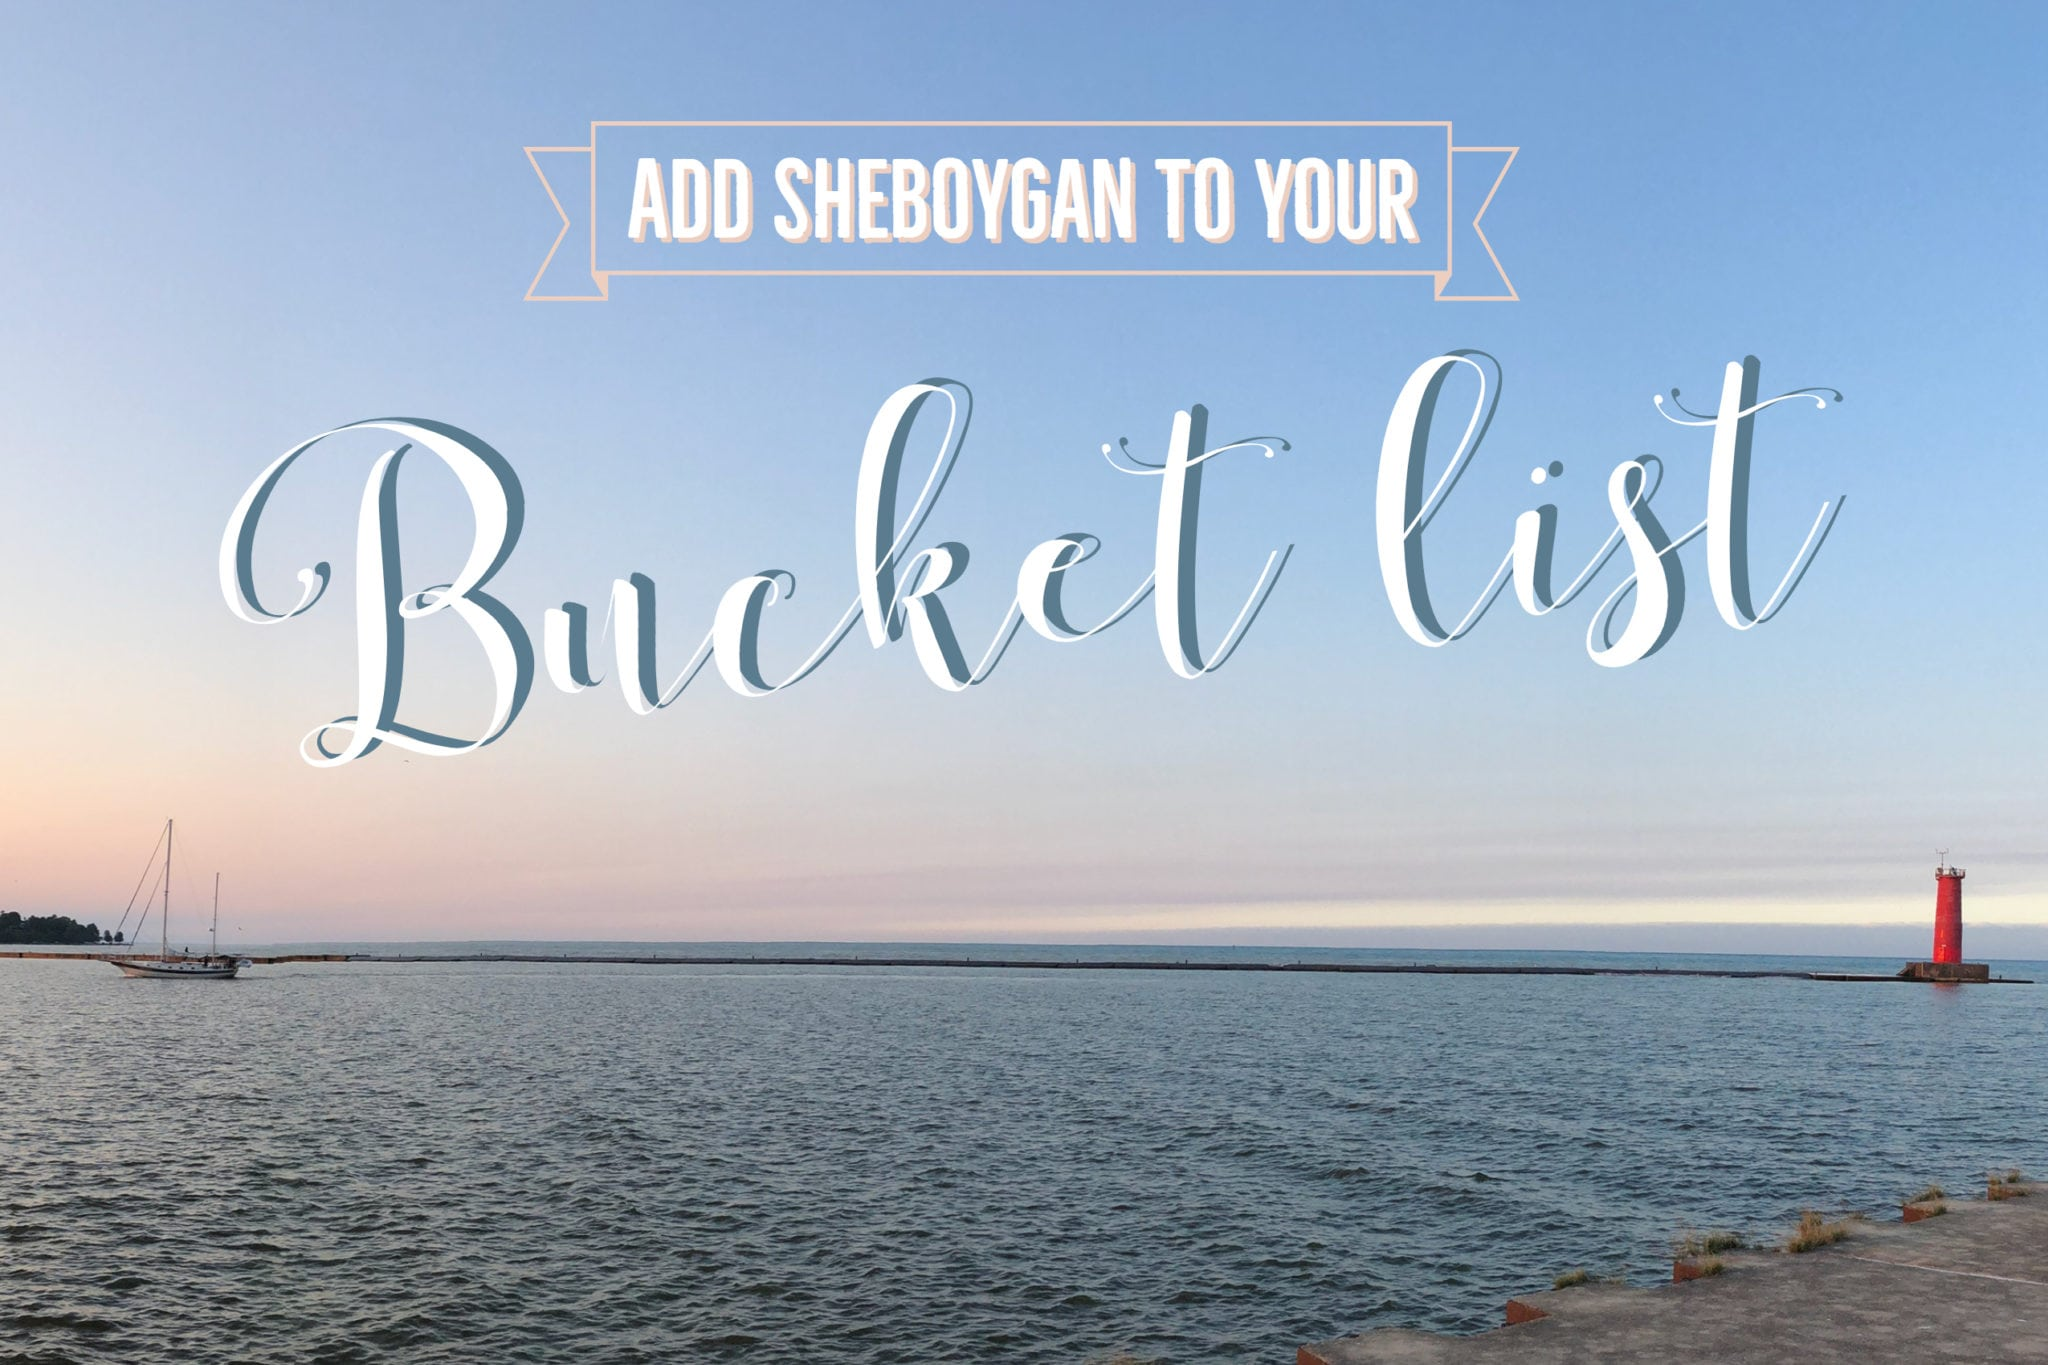 Sheboygan Bucket-List